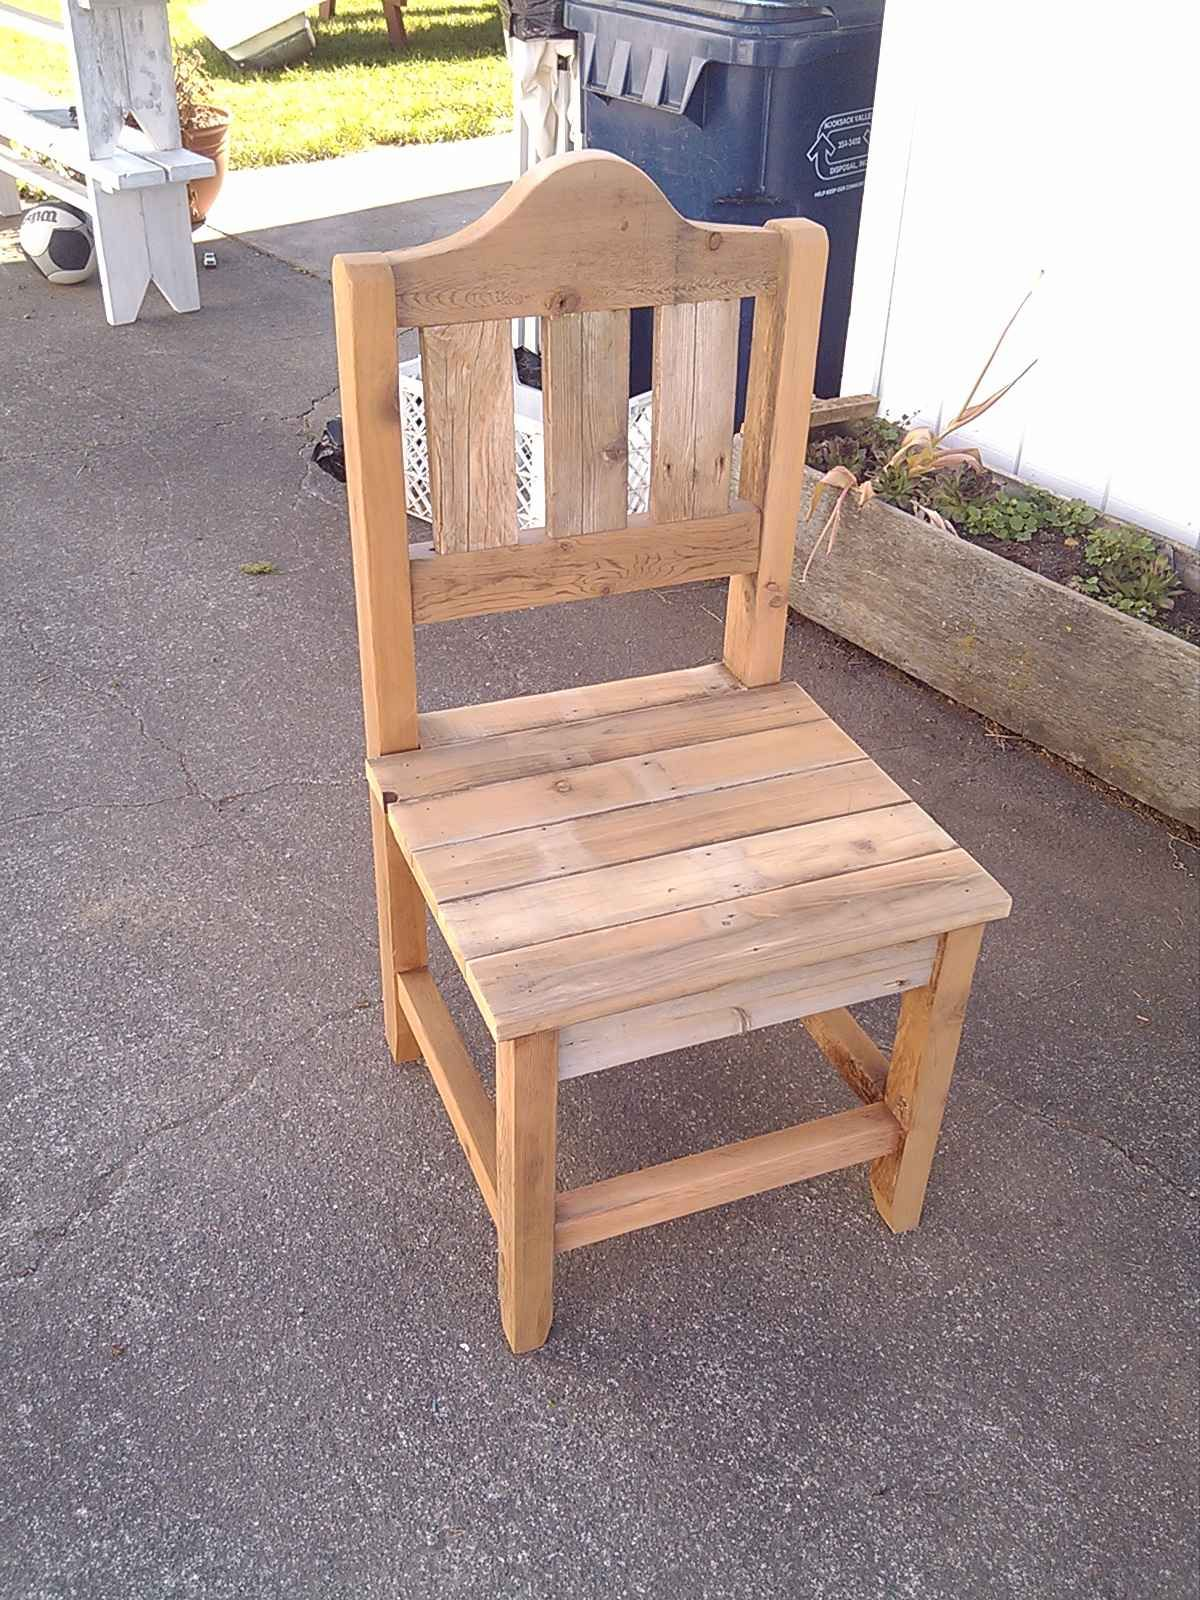 Farmhouse chair plans with free furniture plans to build a